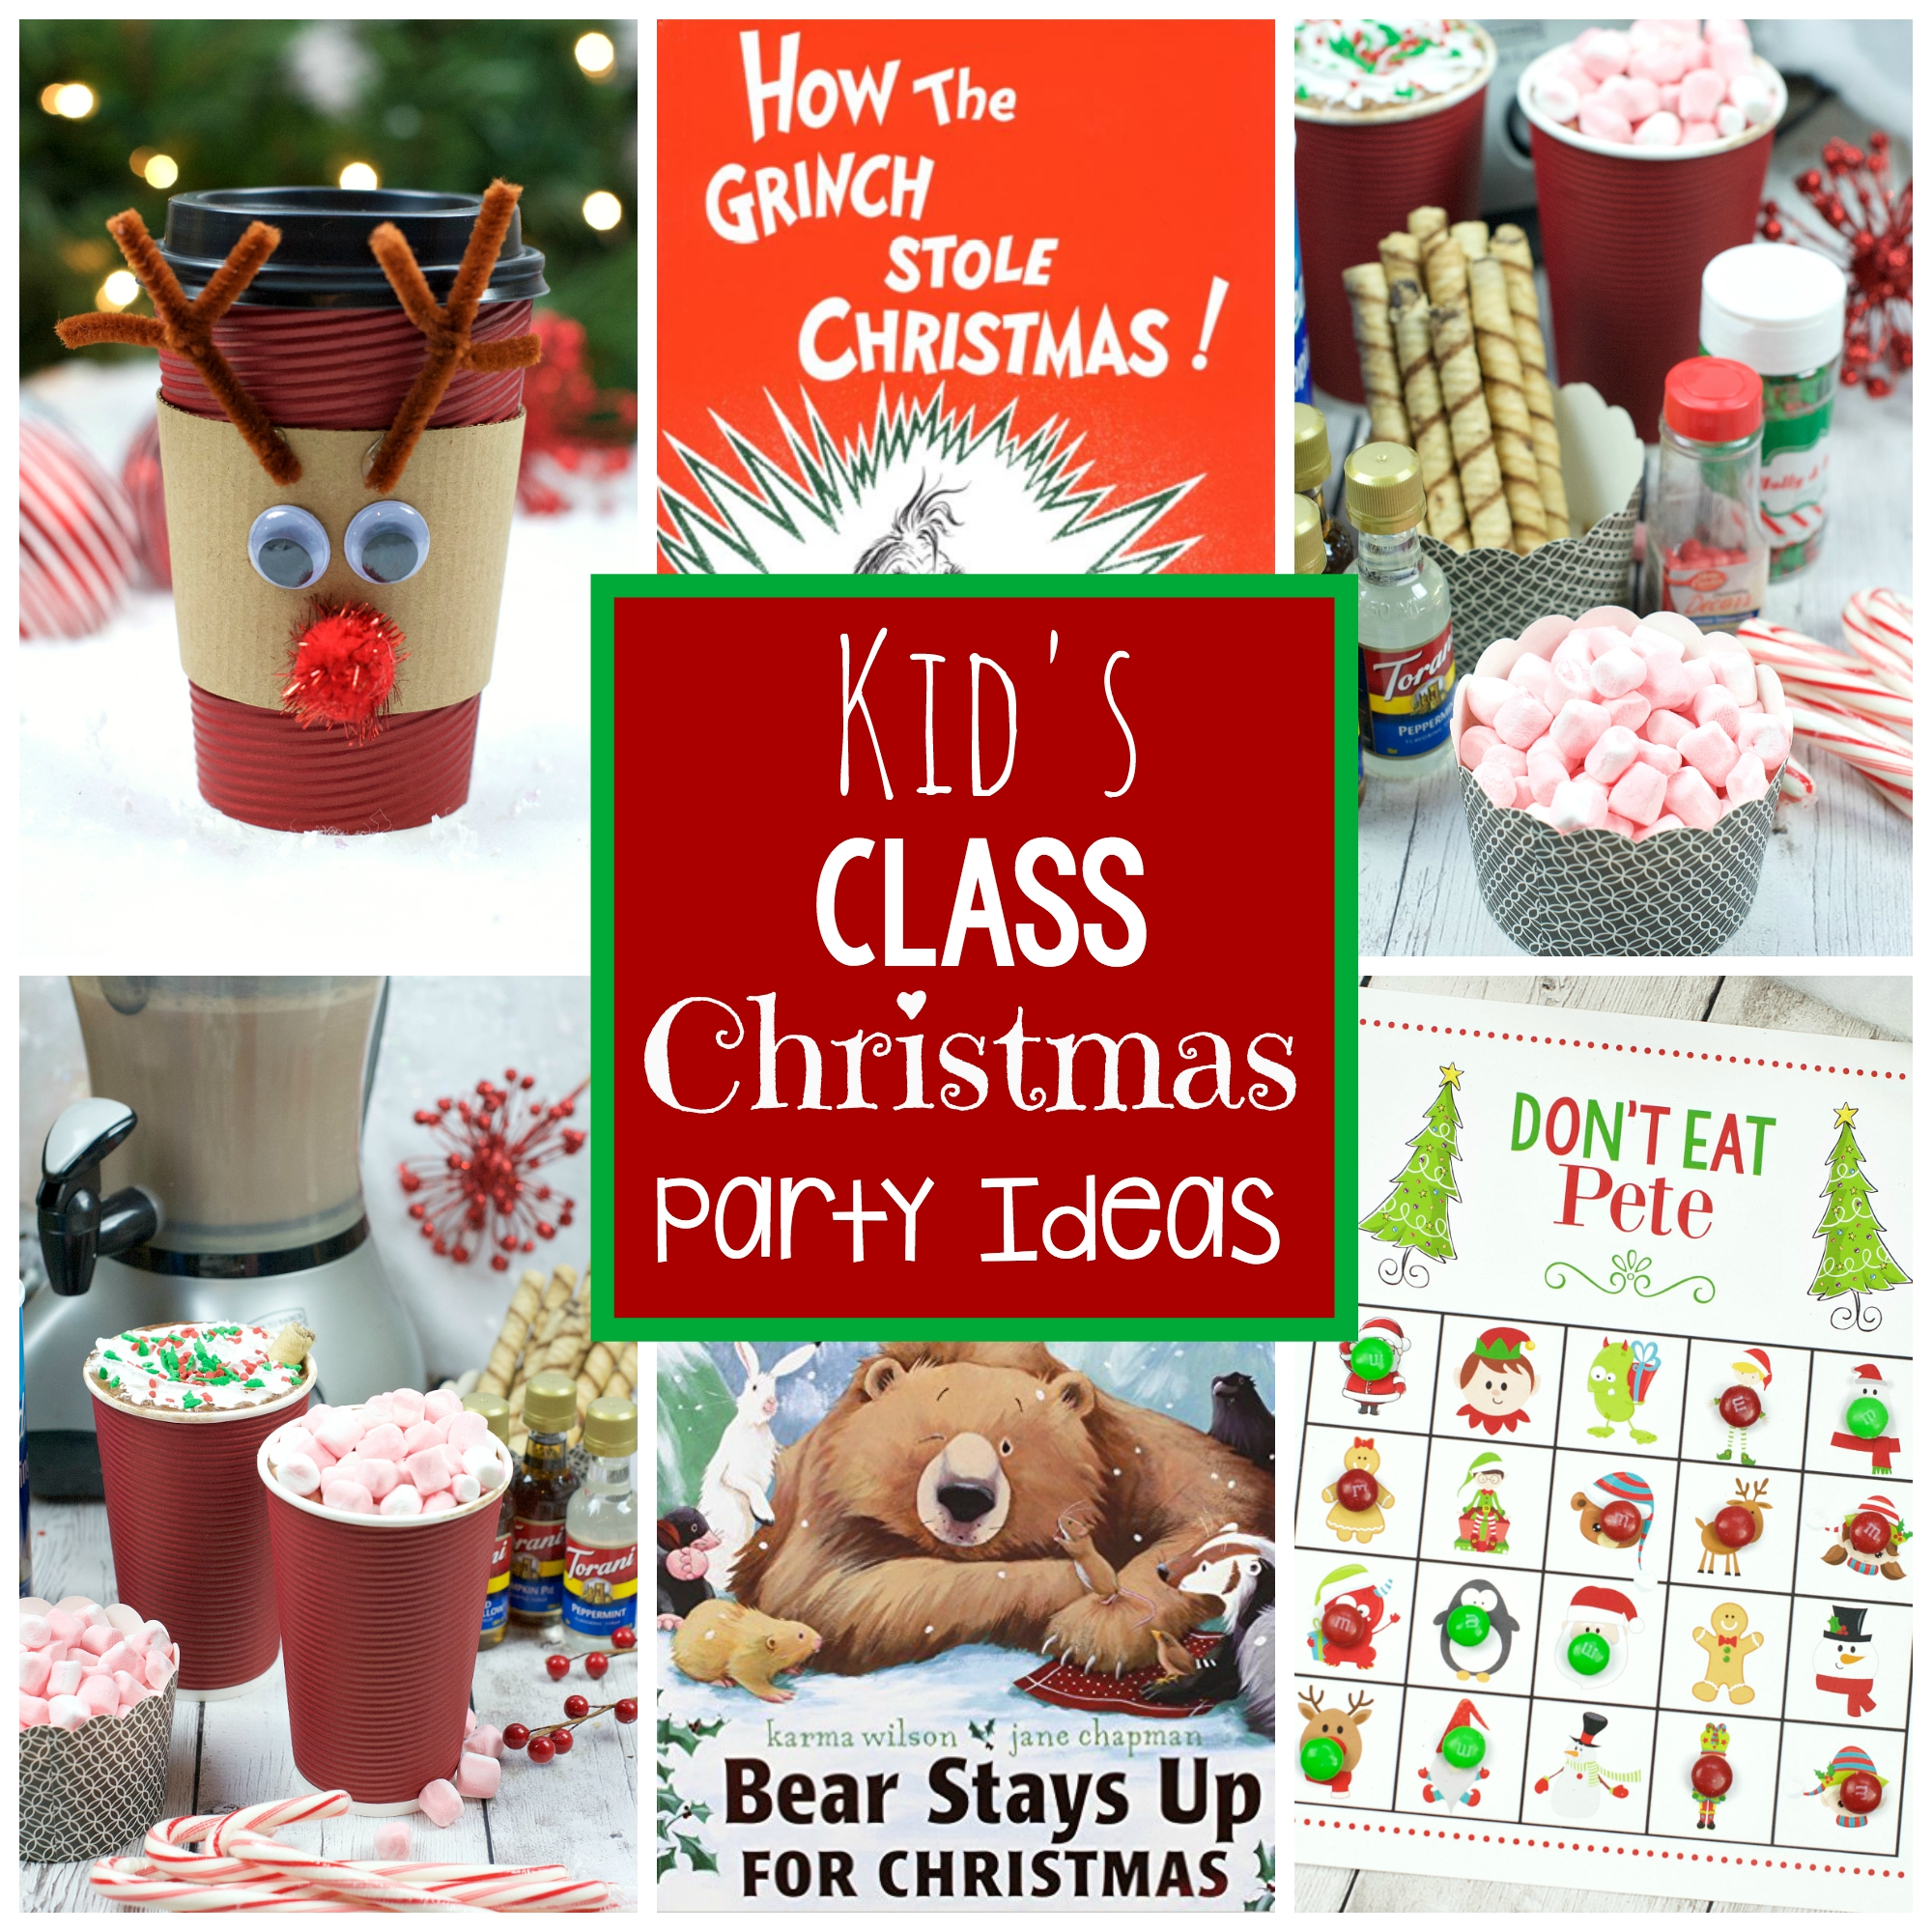 10 Unique Christmas Photo Ideas For Kids 25 kids christmas party ideas fun squared 1 2020